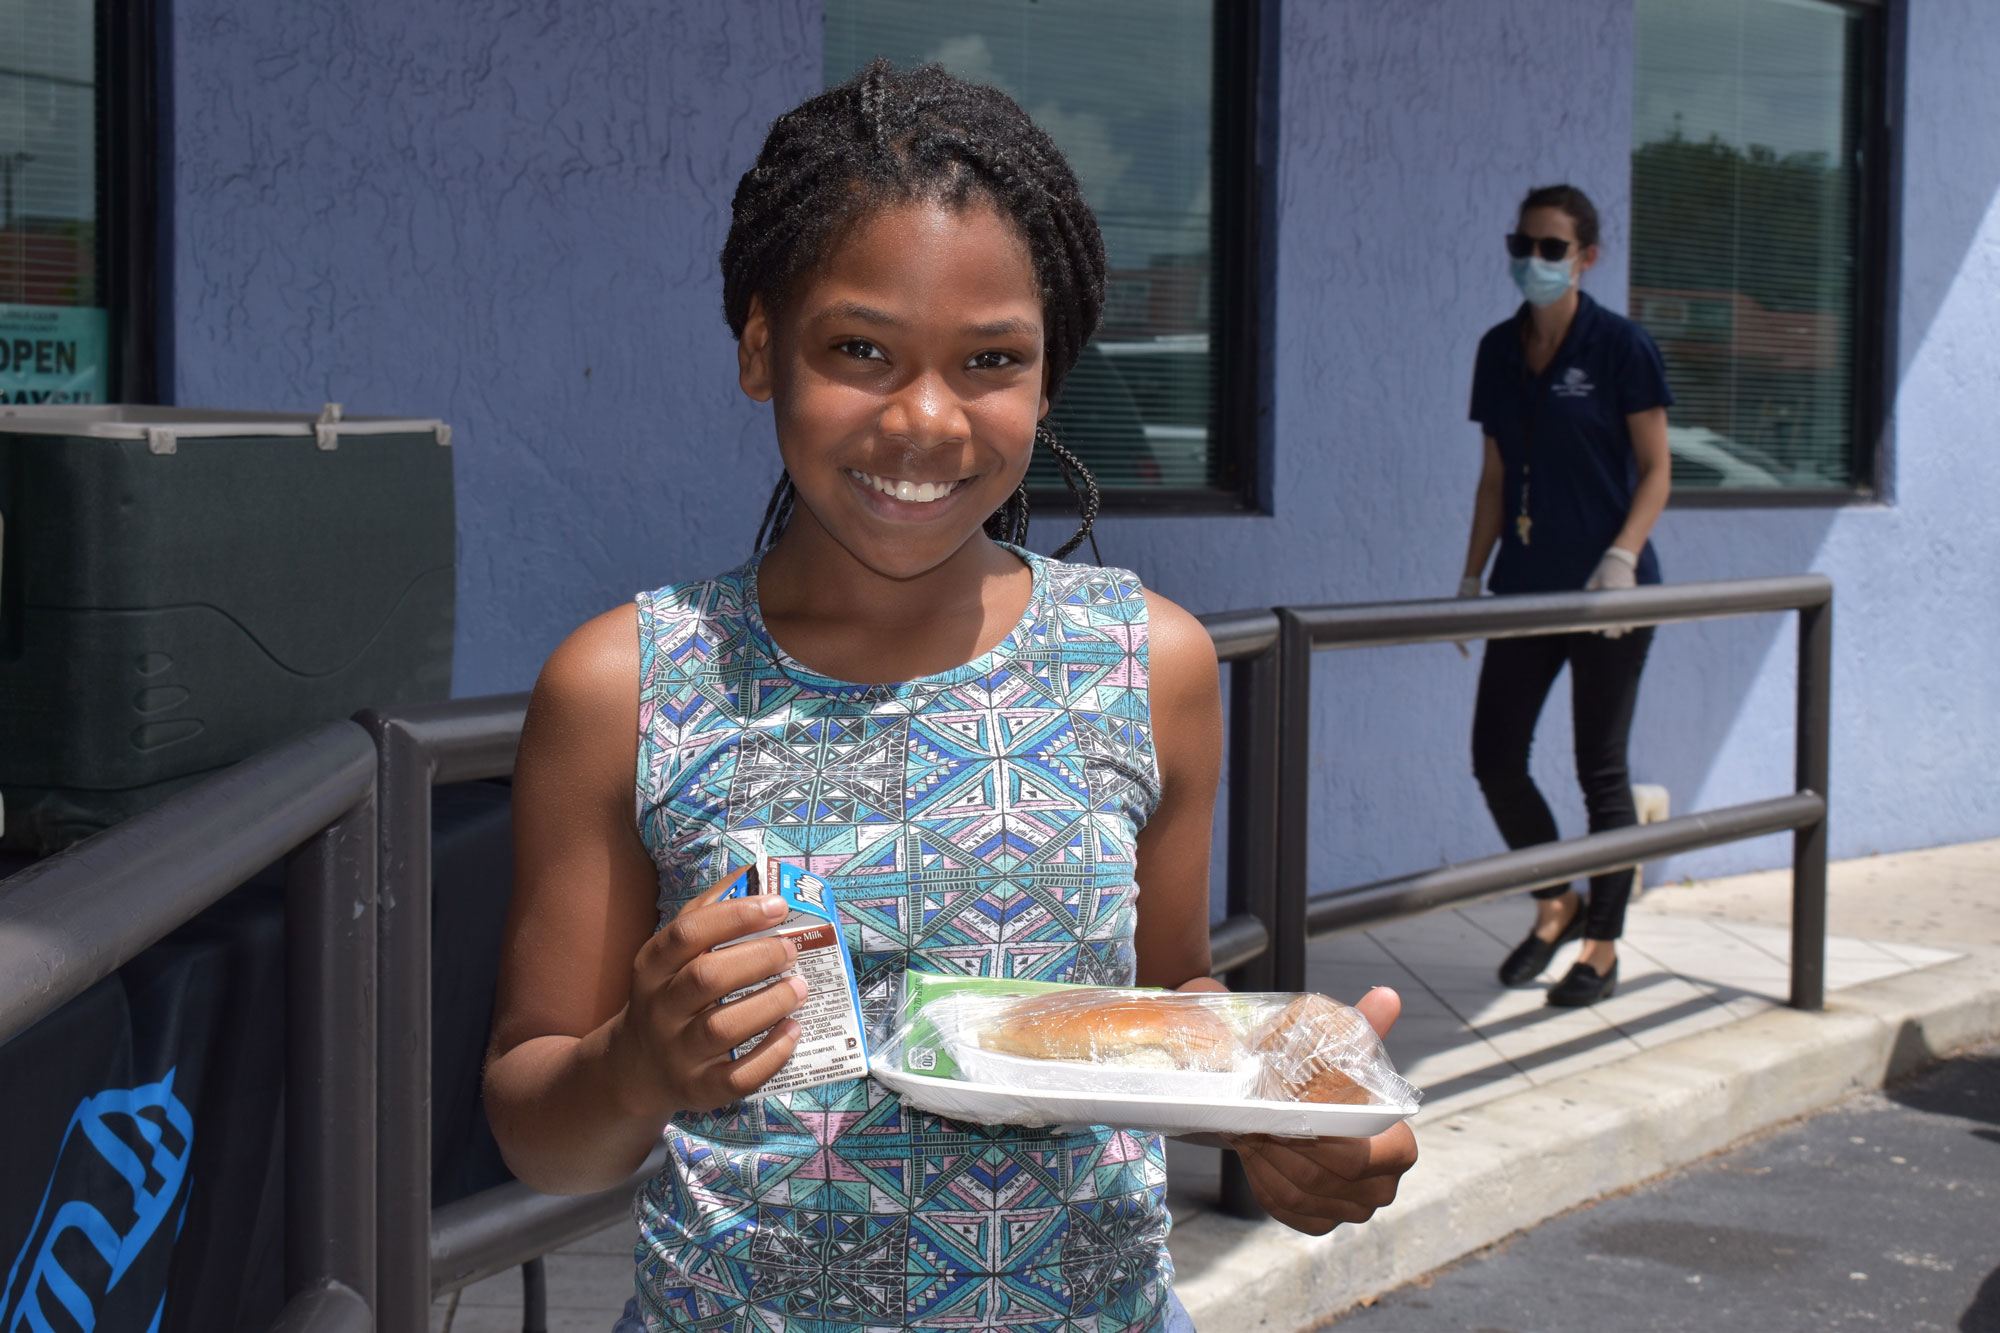 Young girl receiving lunch.